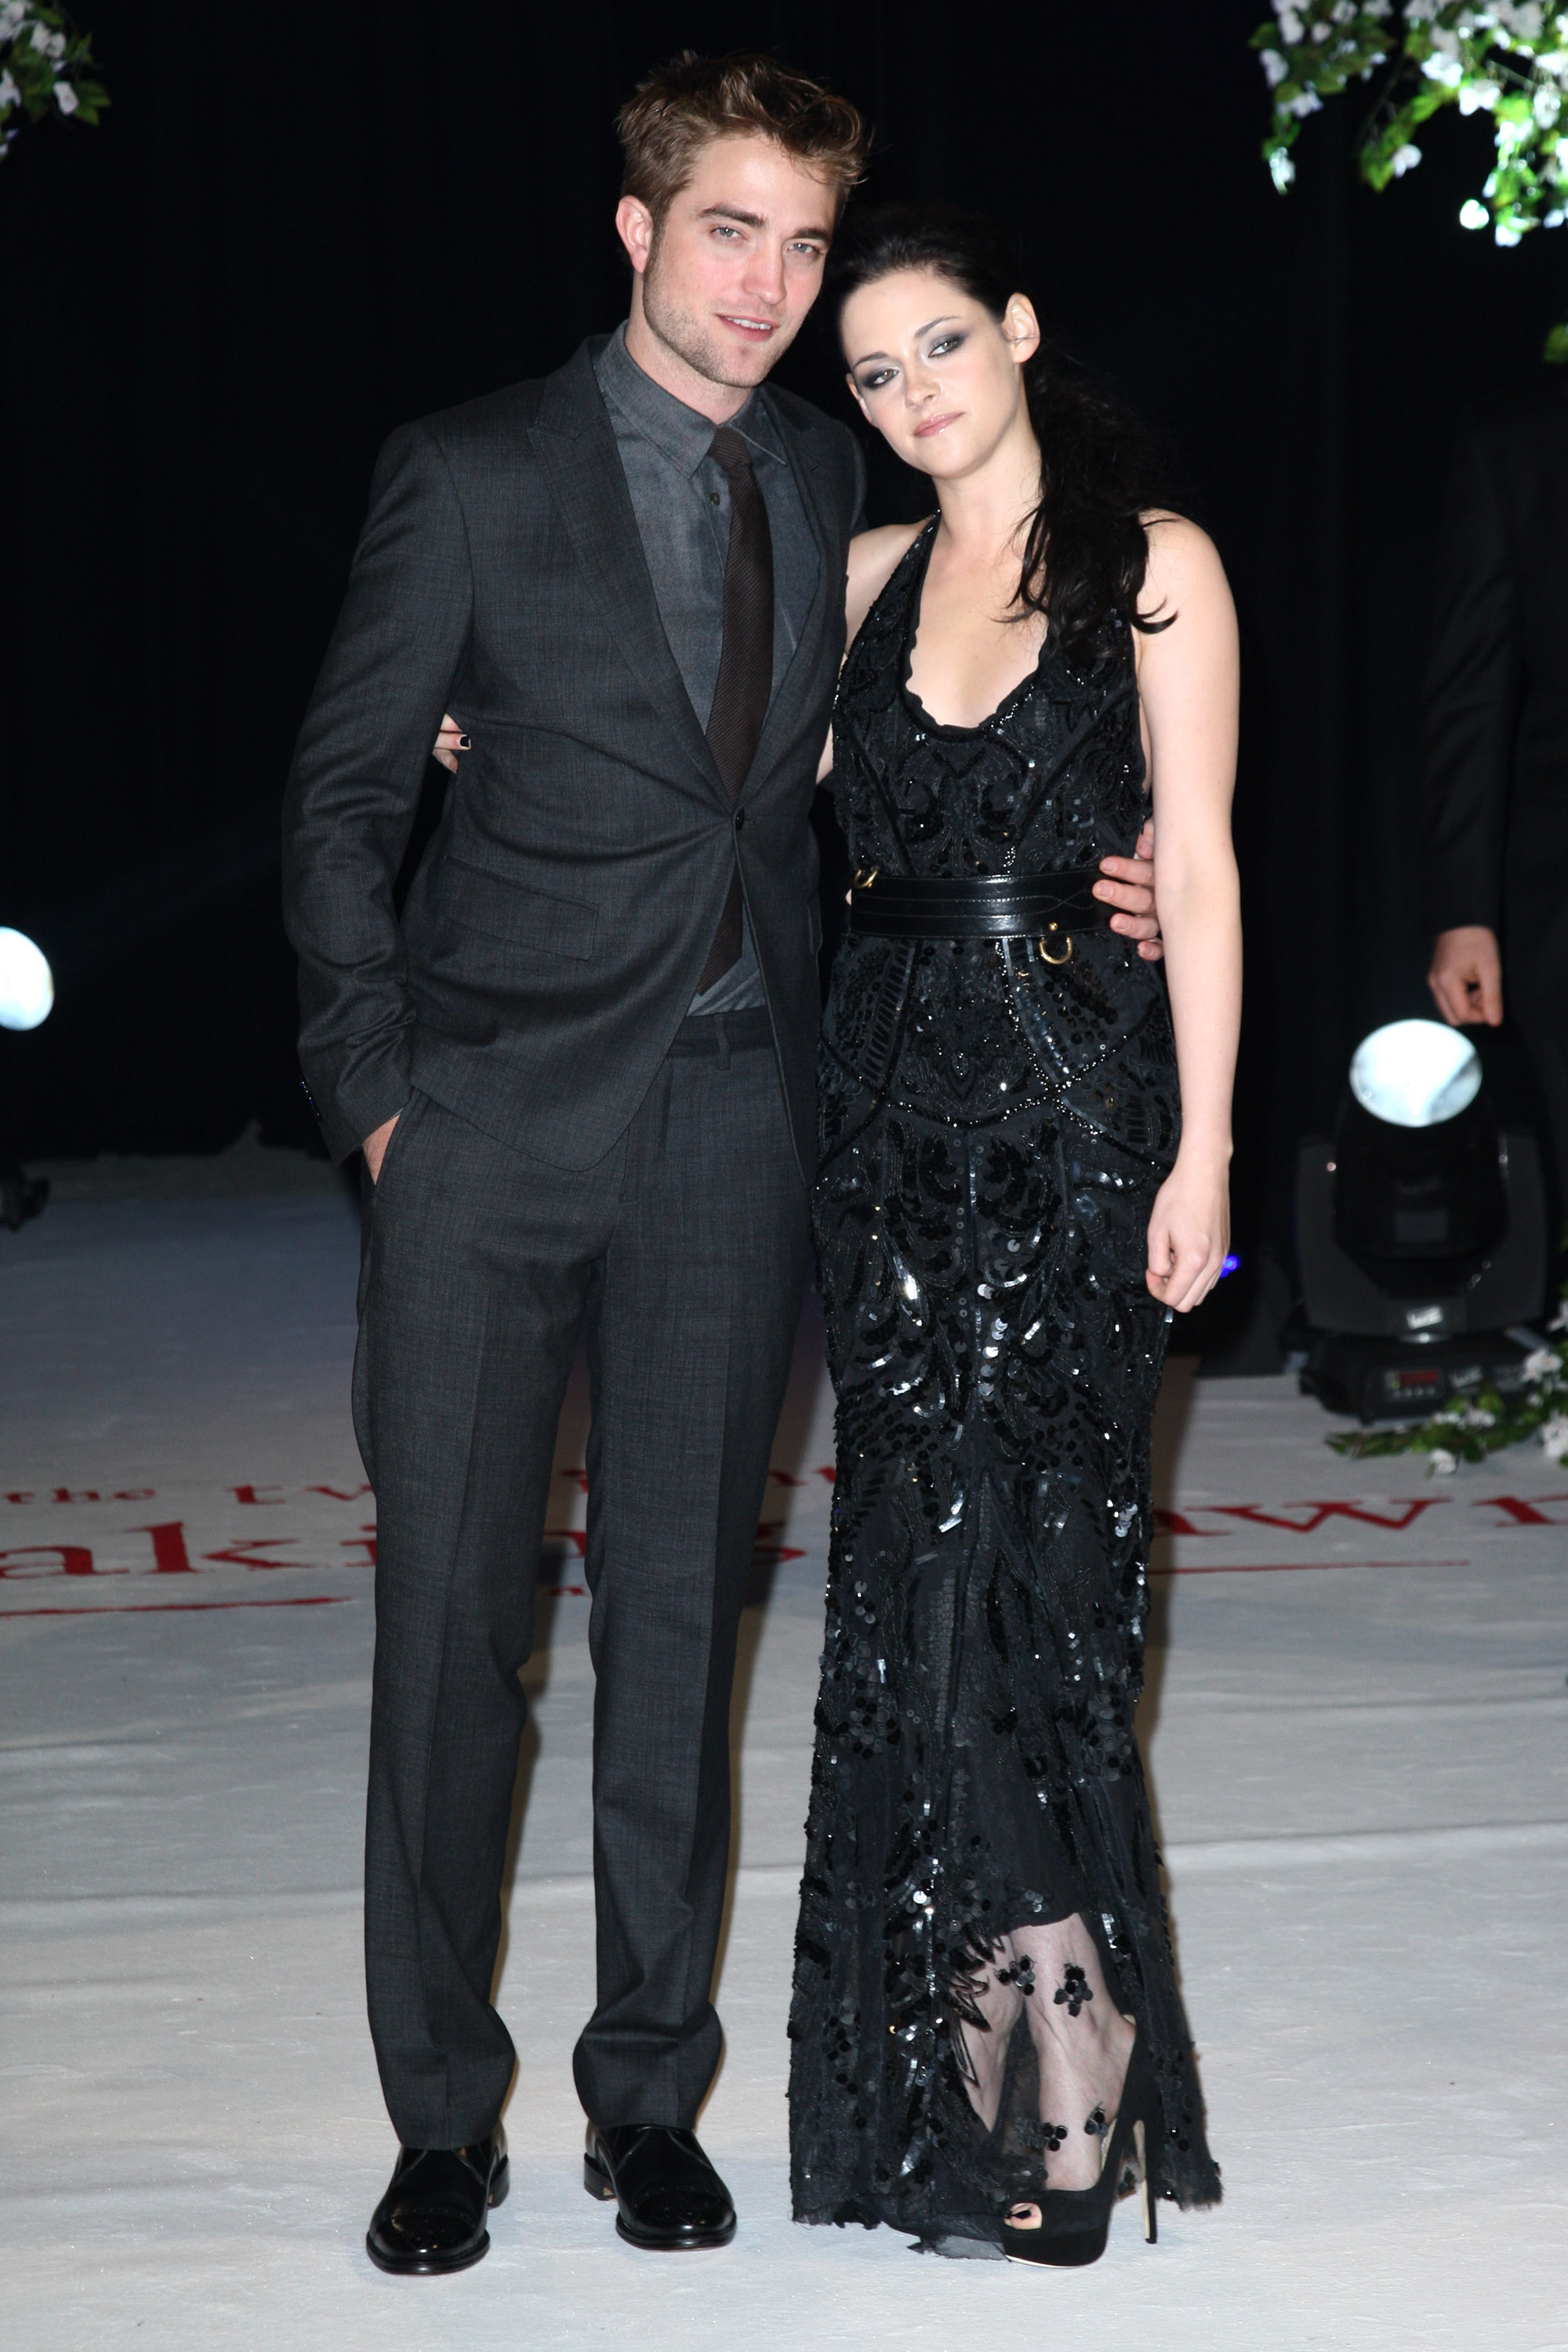 Kristen Stewart posed with Robert Pattinson at the UK premiere of Breaking Dawn Part 1 at Westfield Stratford City in November 2011.